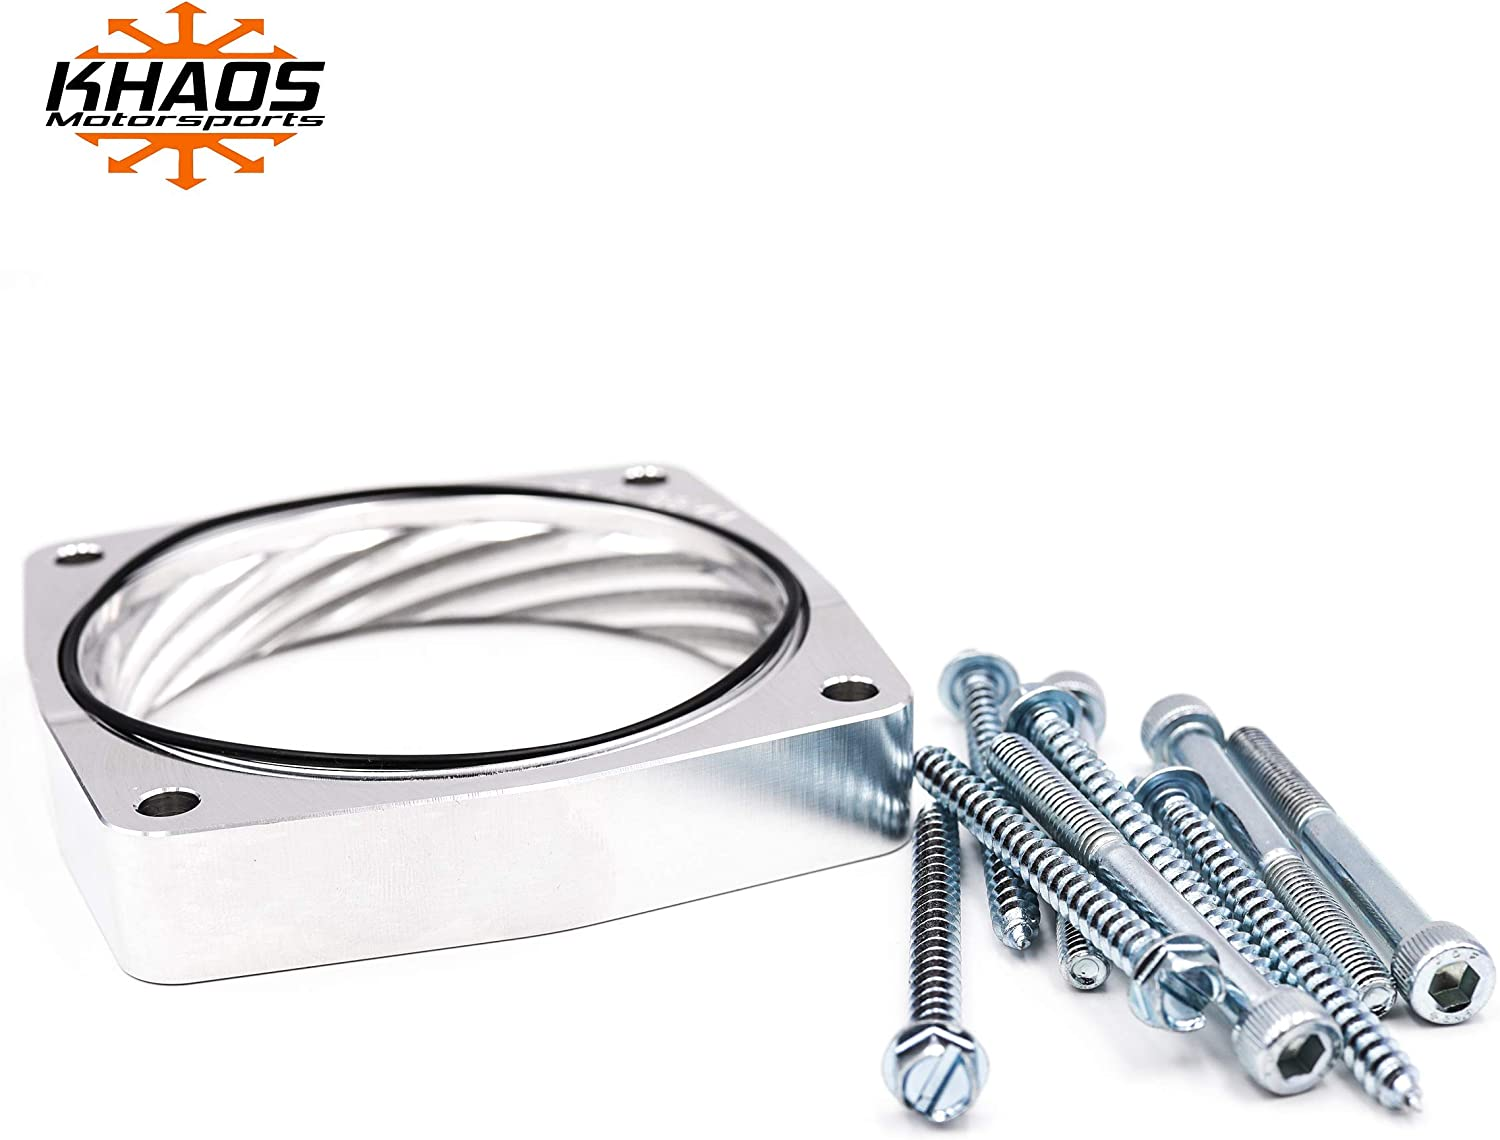 Long-awaited Khaos Motorsports 90mm Daily bargain sale Helix Throttle Spacer Compatible Body Wit